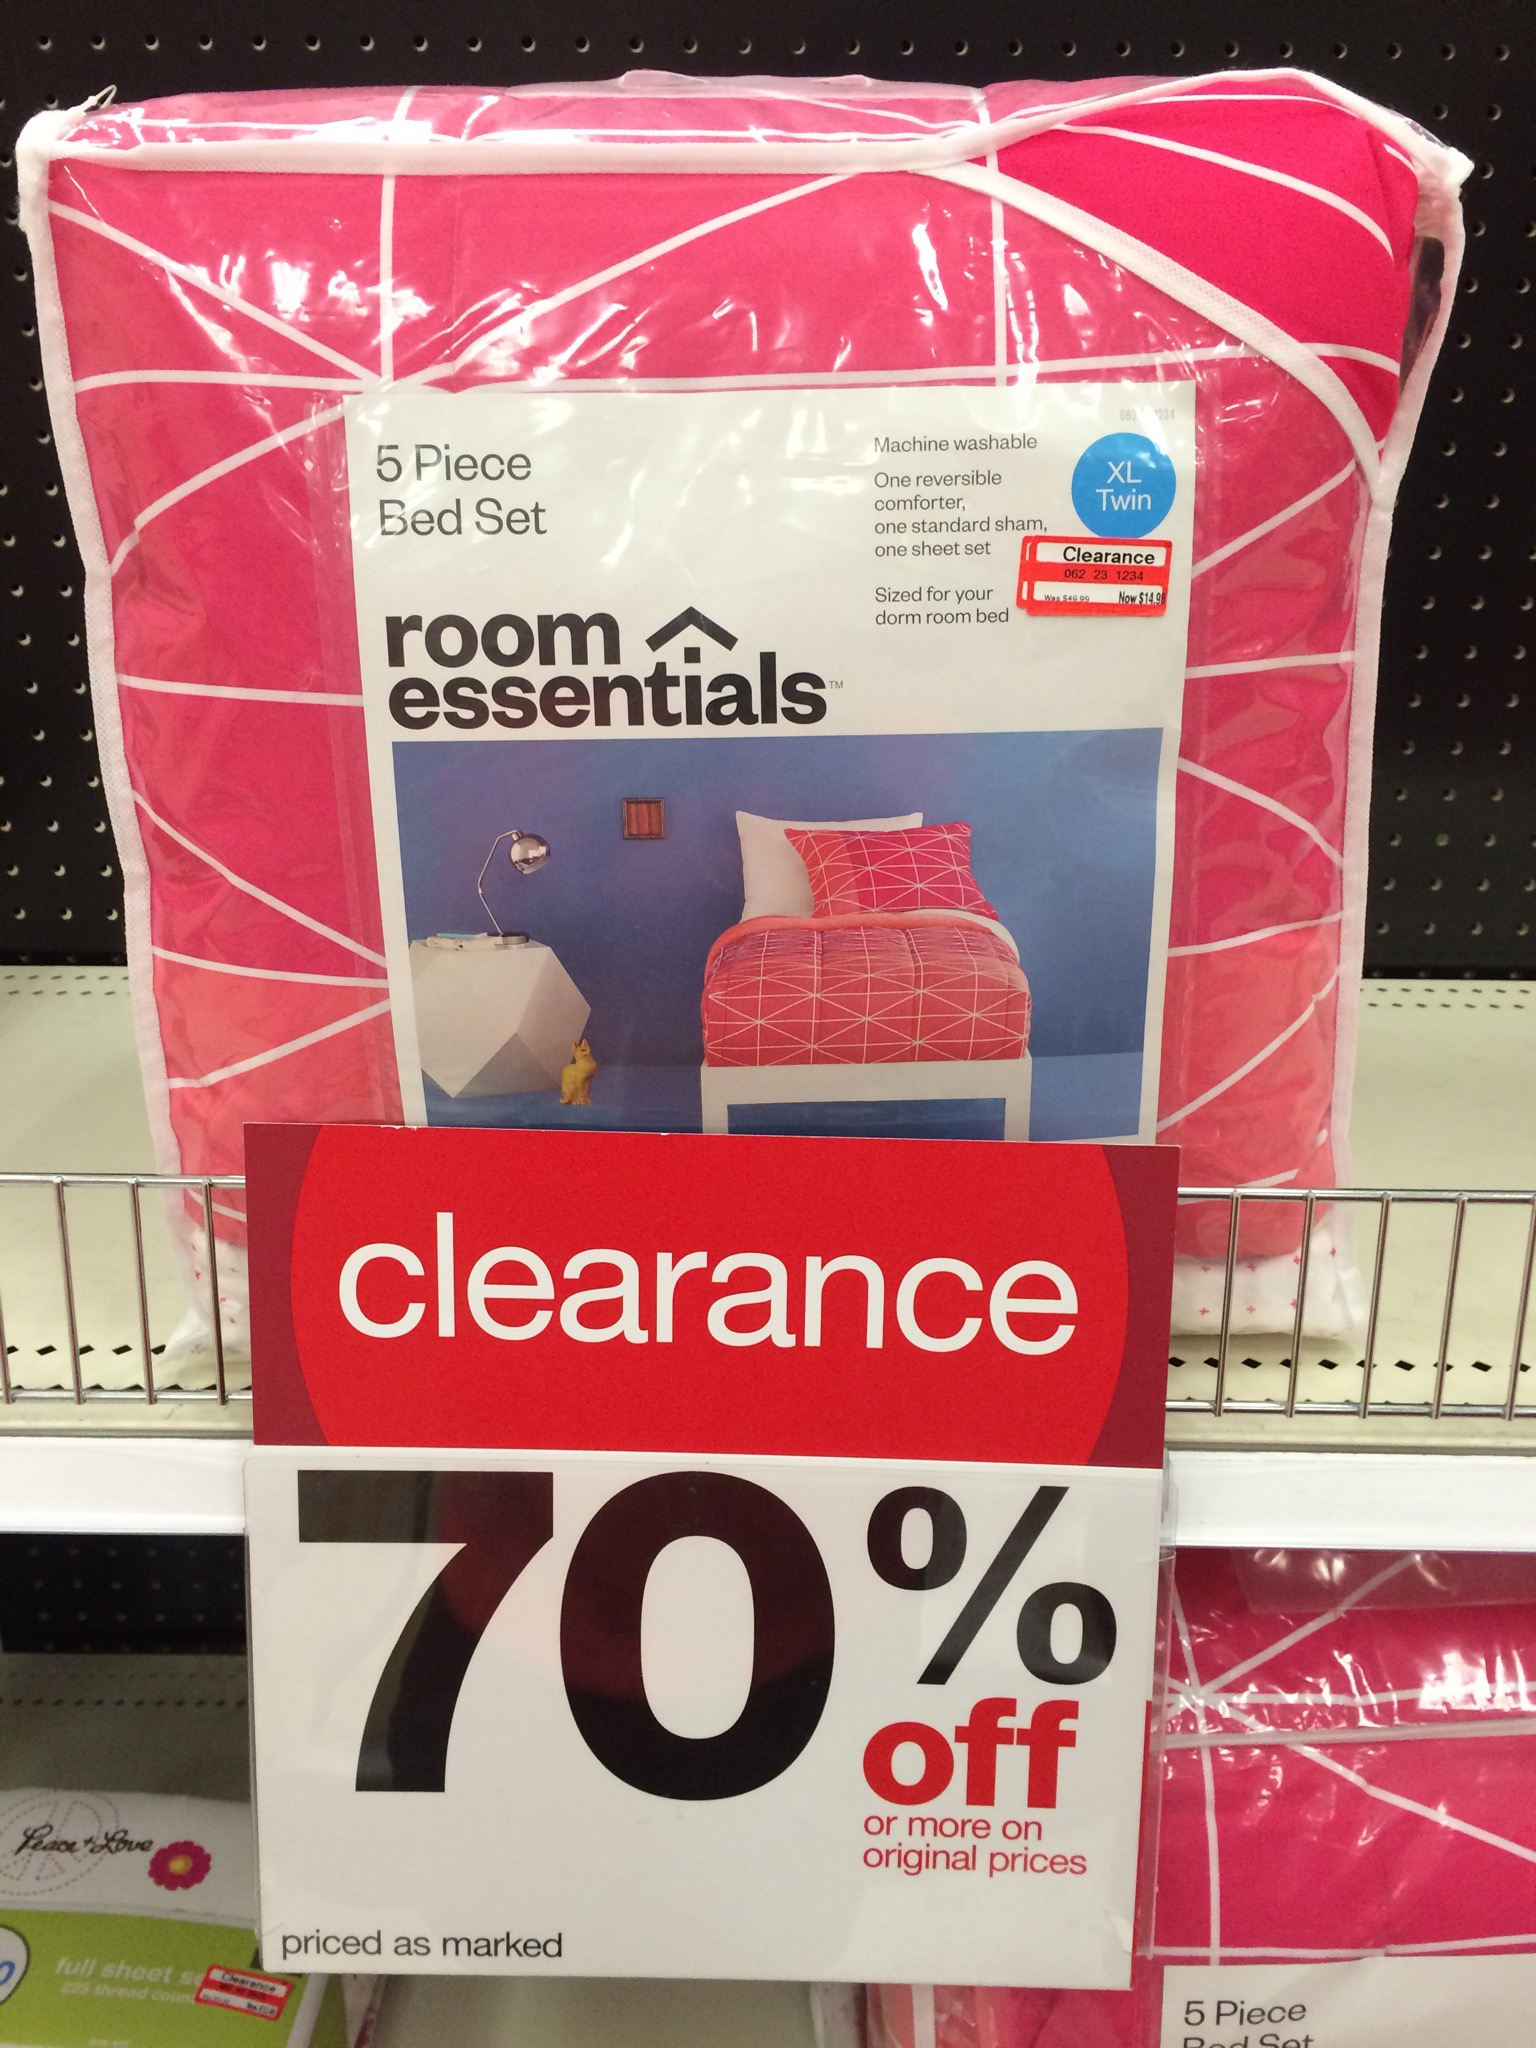 Tar Bedding Clearance 30 OFF